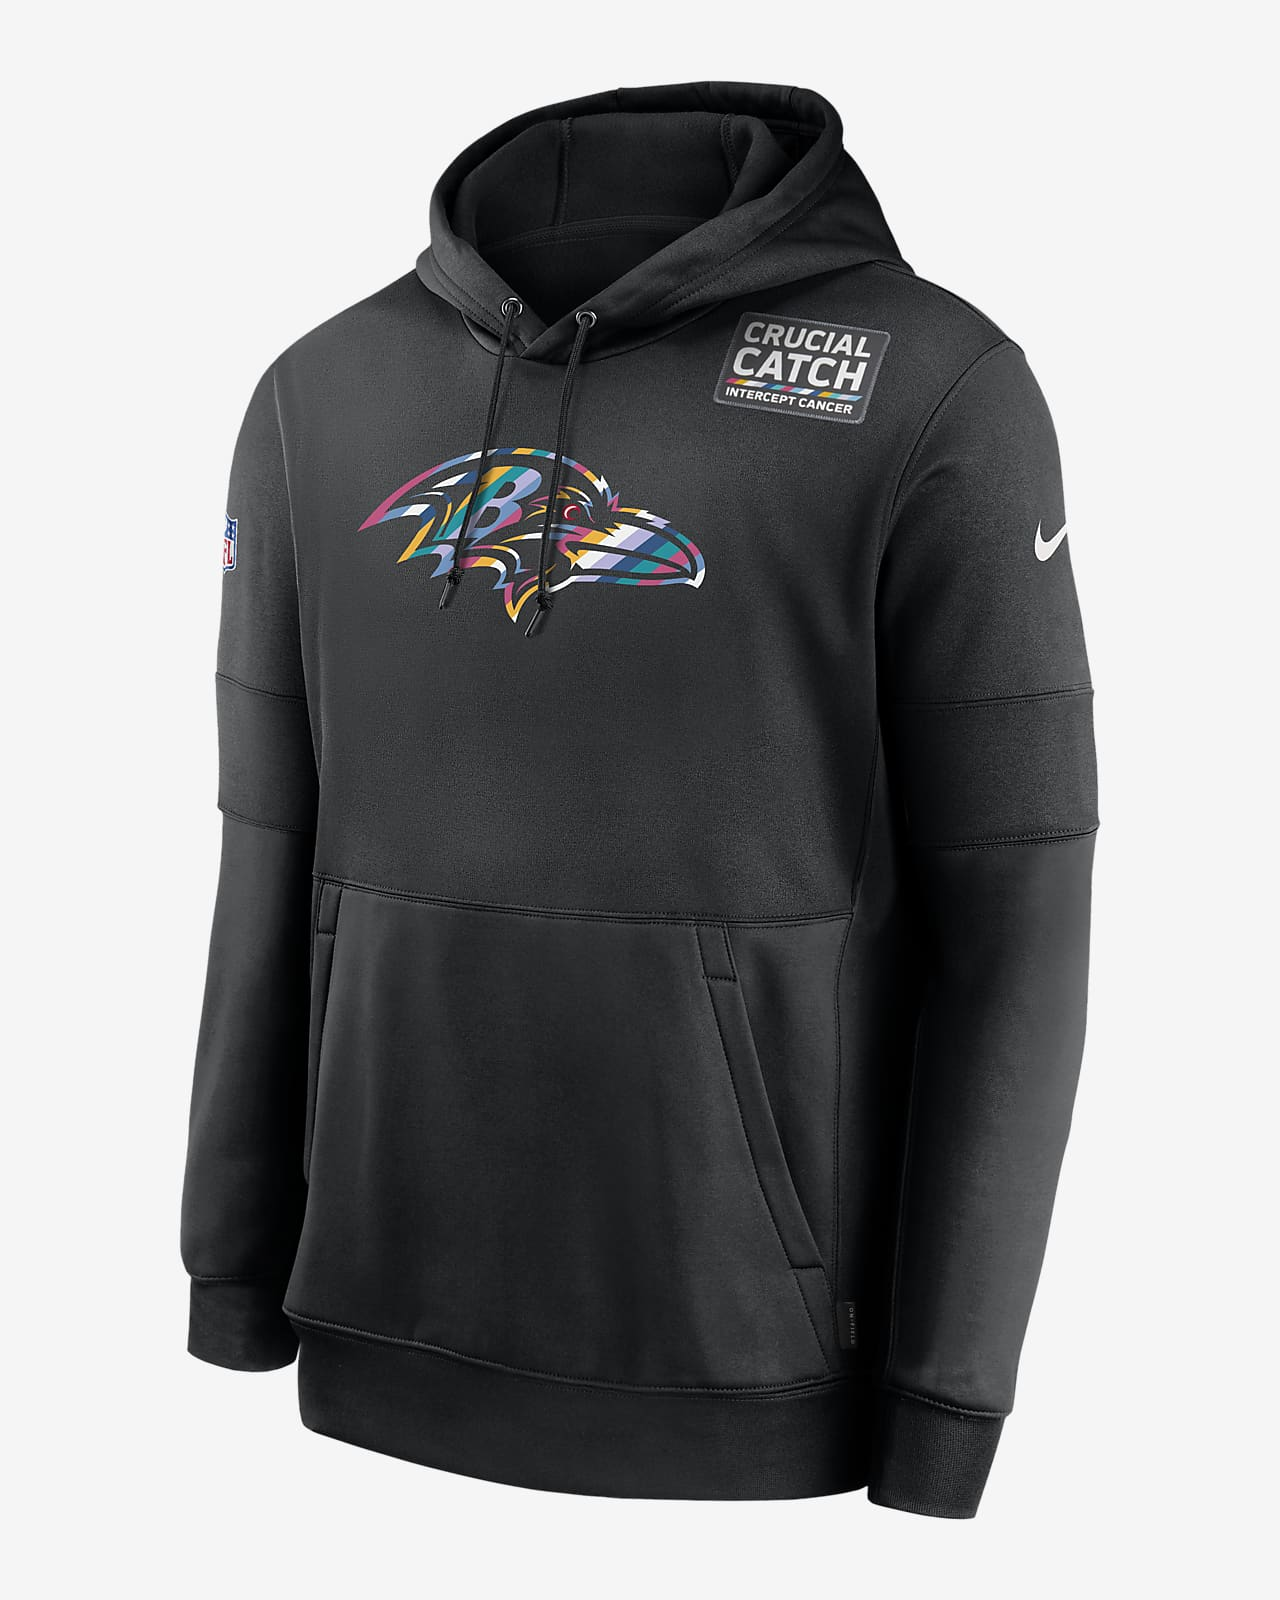 Nike Therma Crucial Catch (NFL Ravens) Men's Hoodie